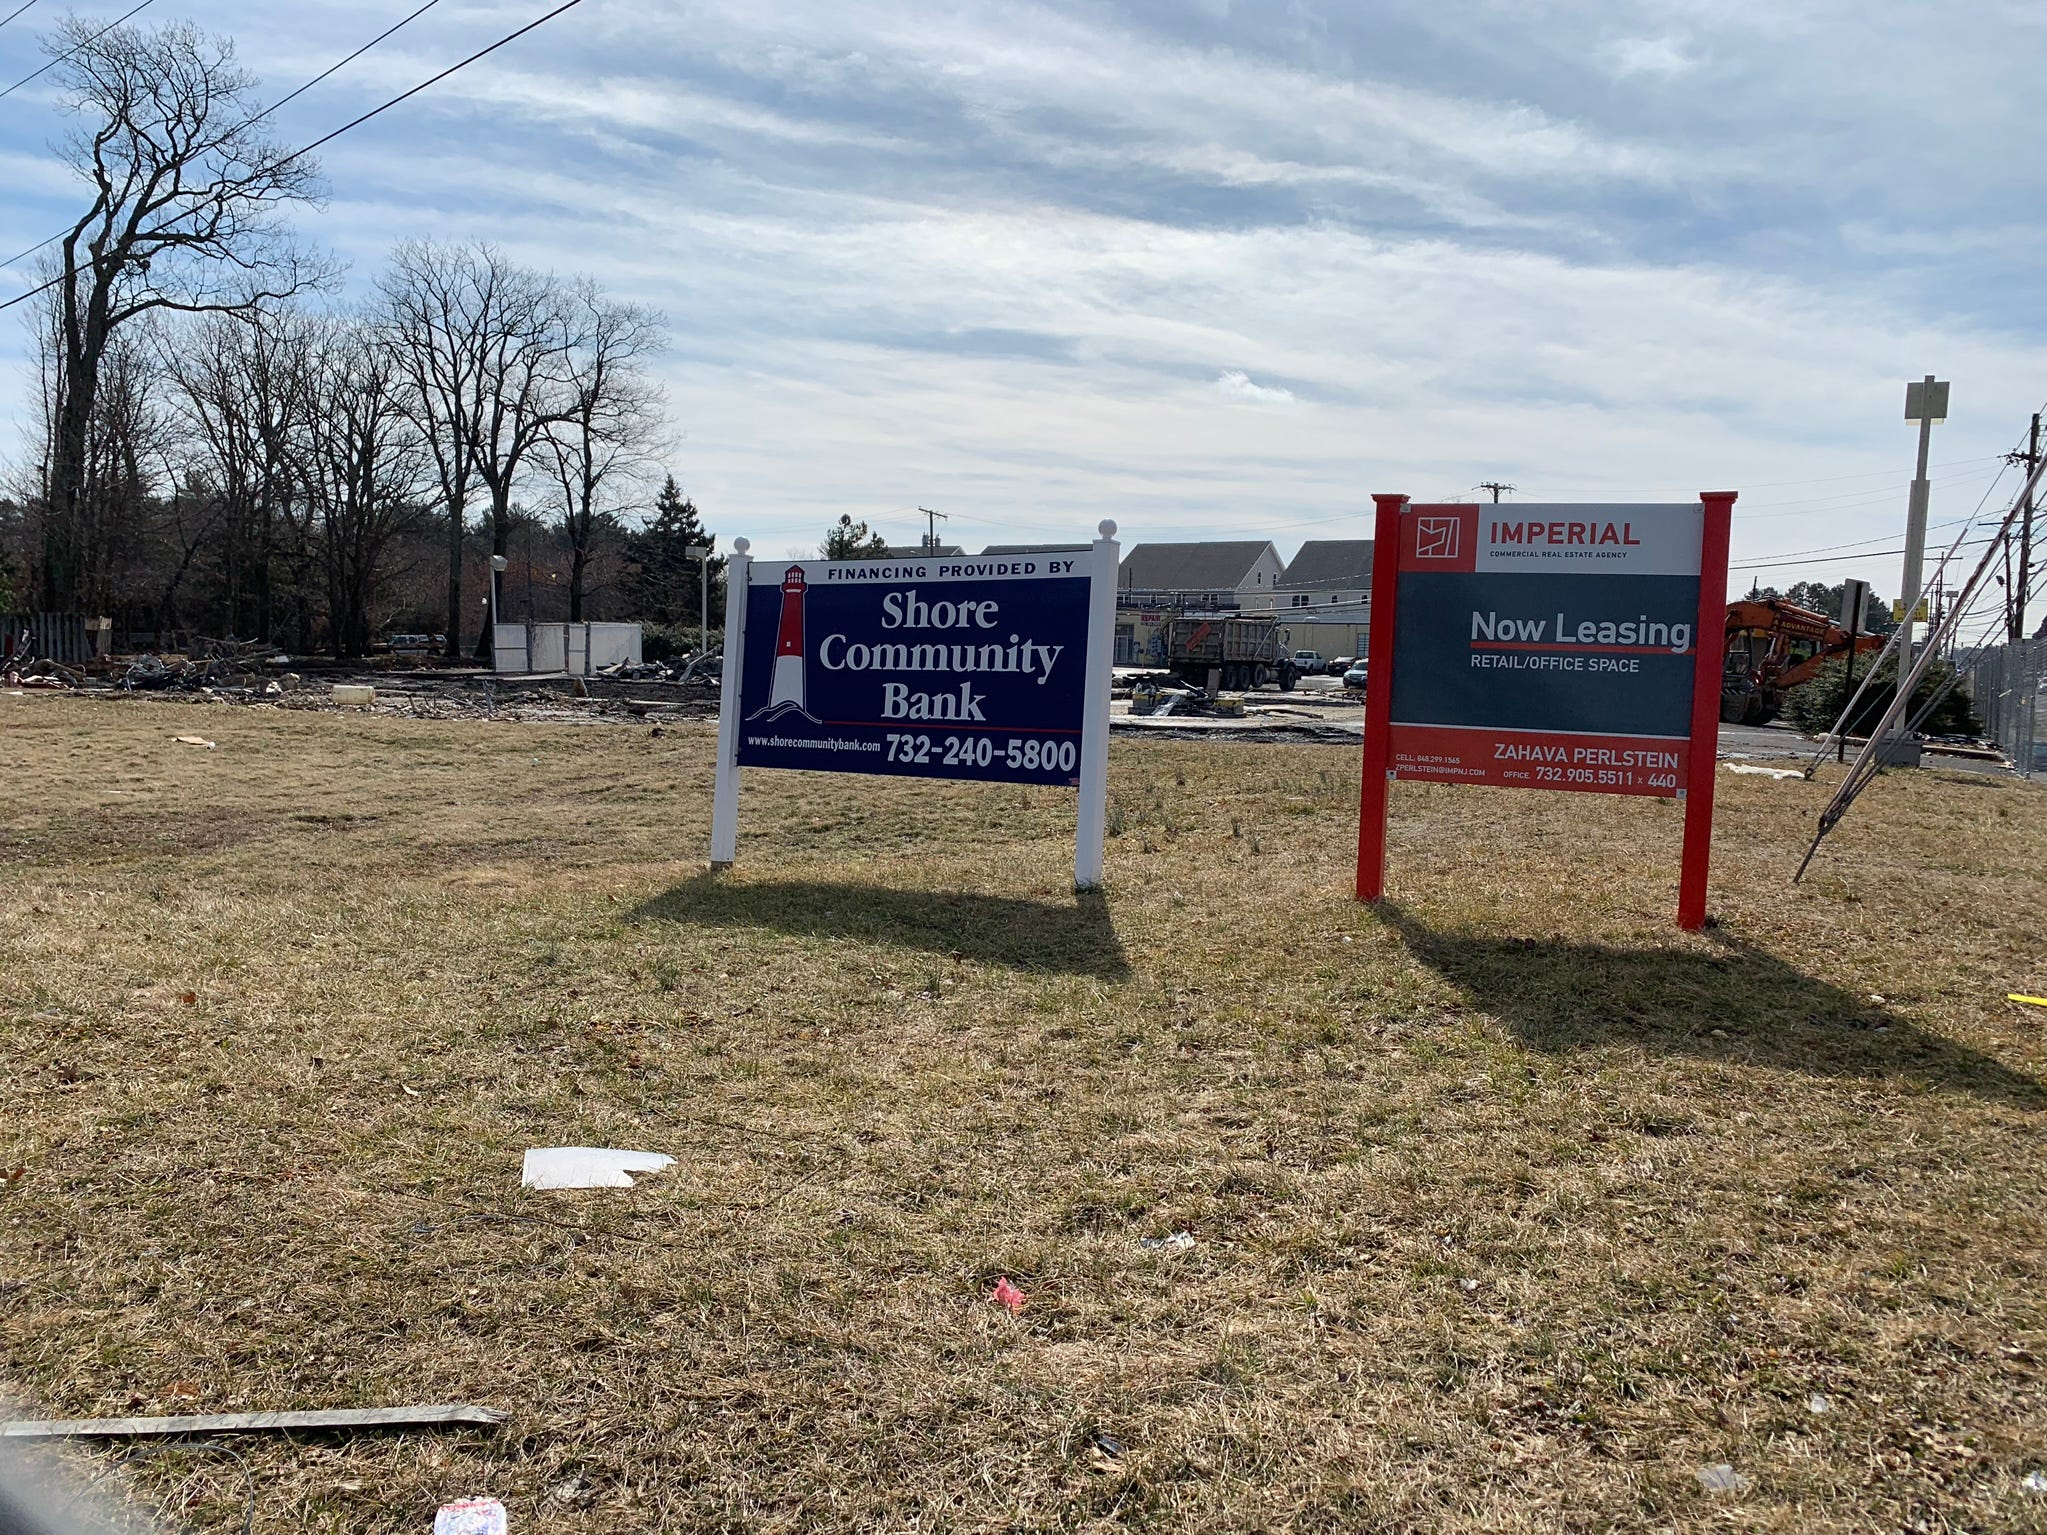 This property at the corner of Route 9 and Chestnut Street in Lakewood will become a shopping center with retail stores and offices.